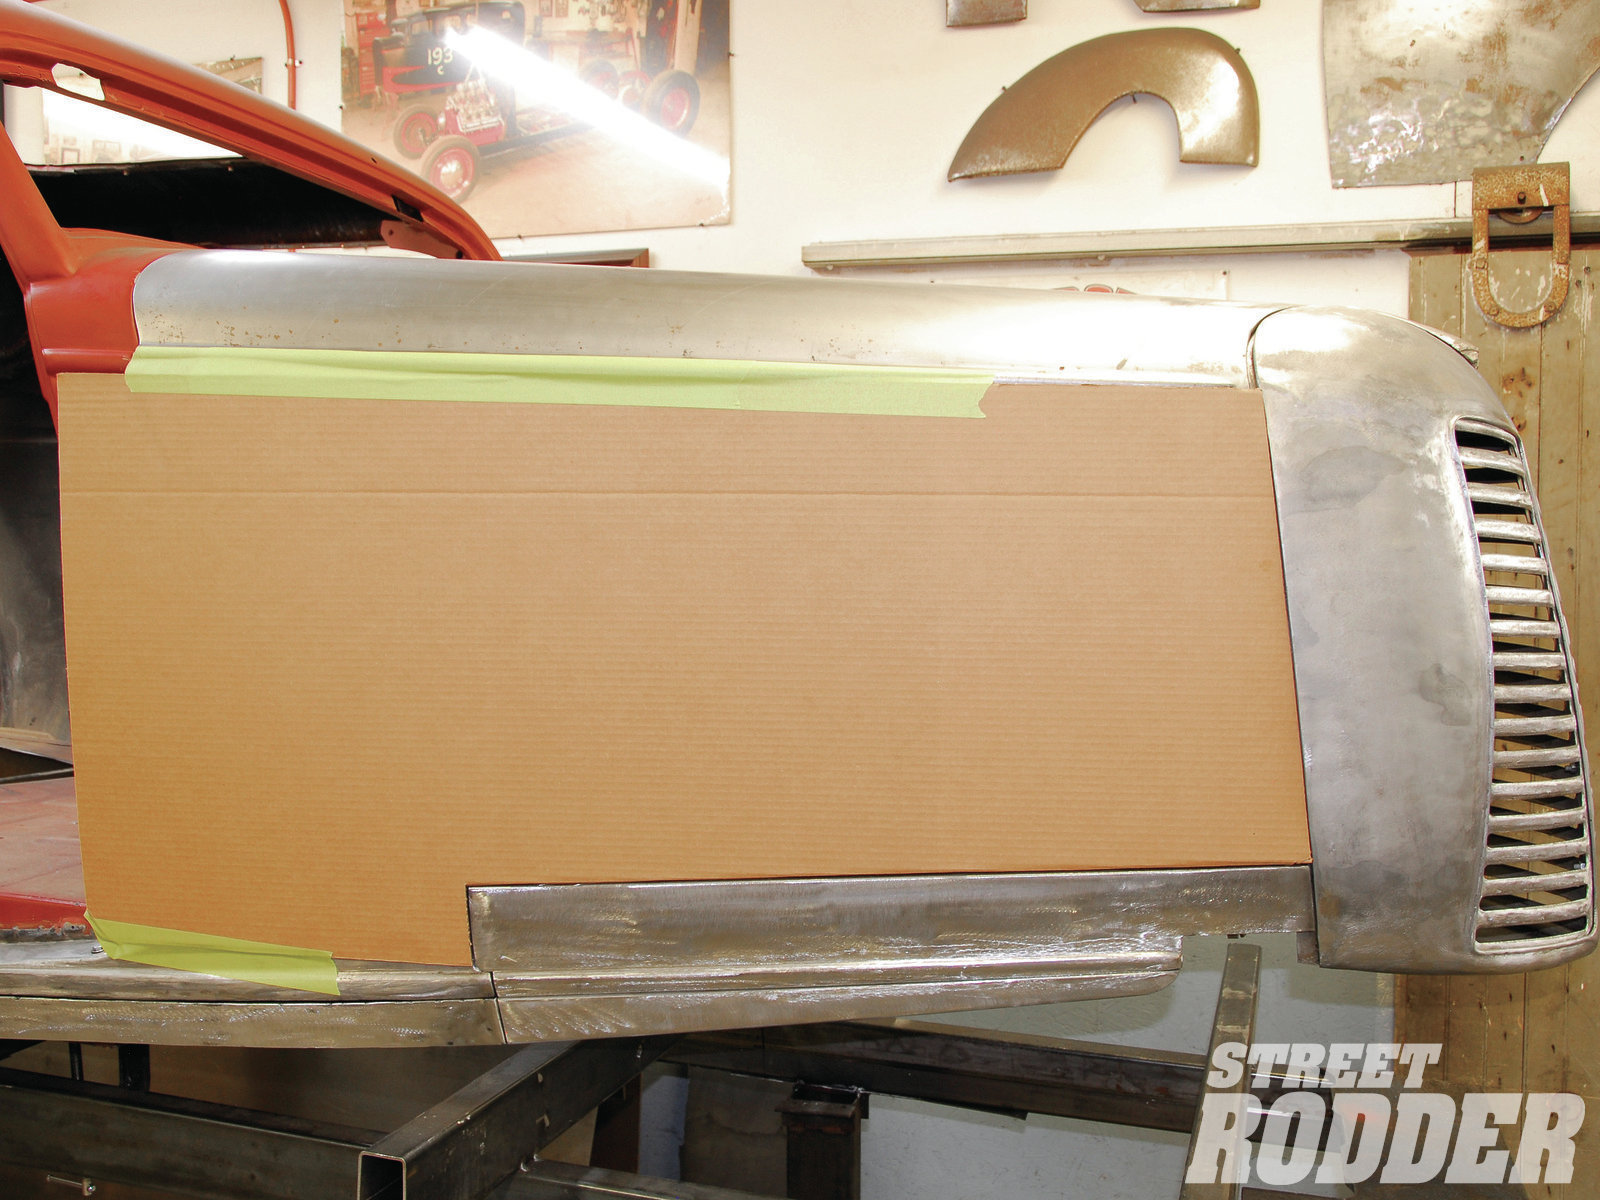 7| Using 2-inch masking tape, the template was then secured in place to begin trimming the rear section.